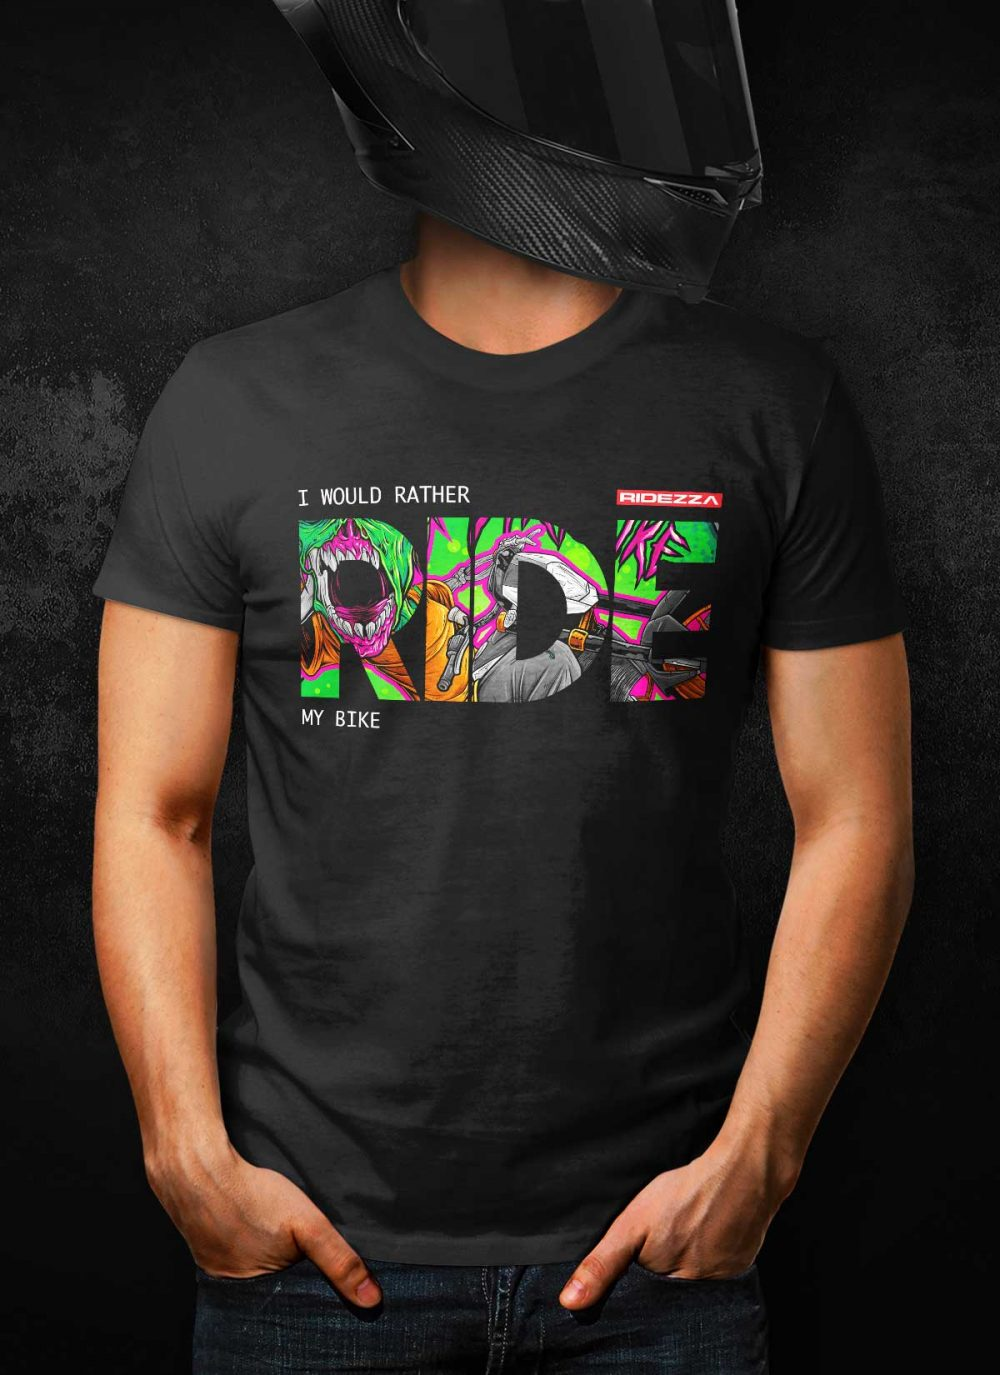 I Would Rather Ride My Bike DBL Edition T-Shirt